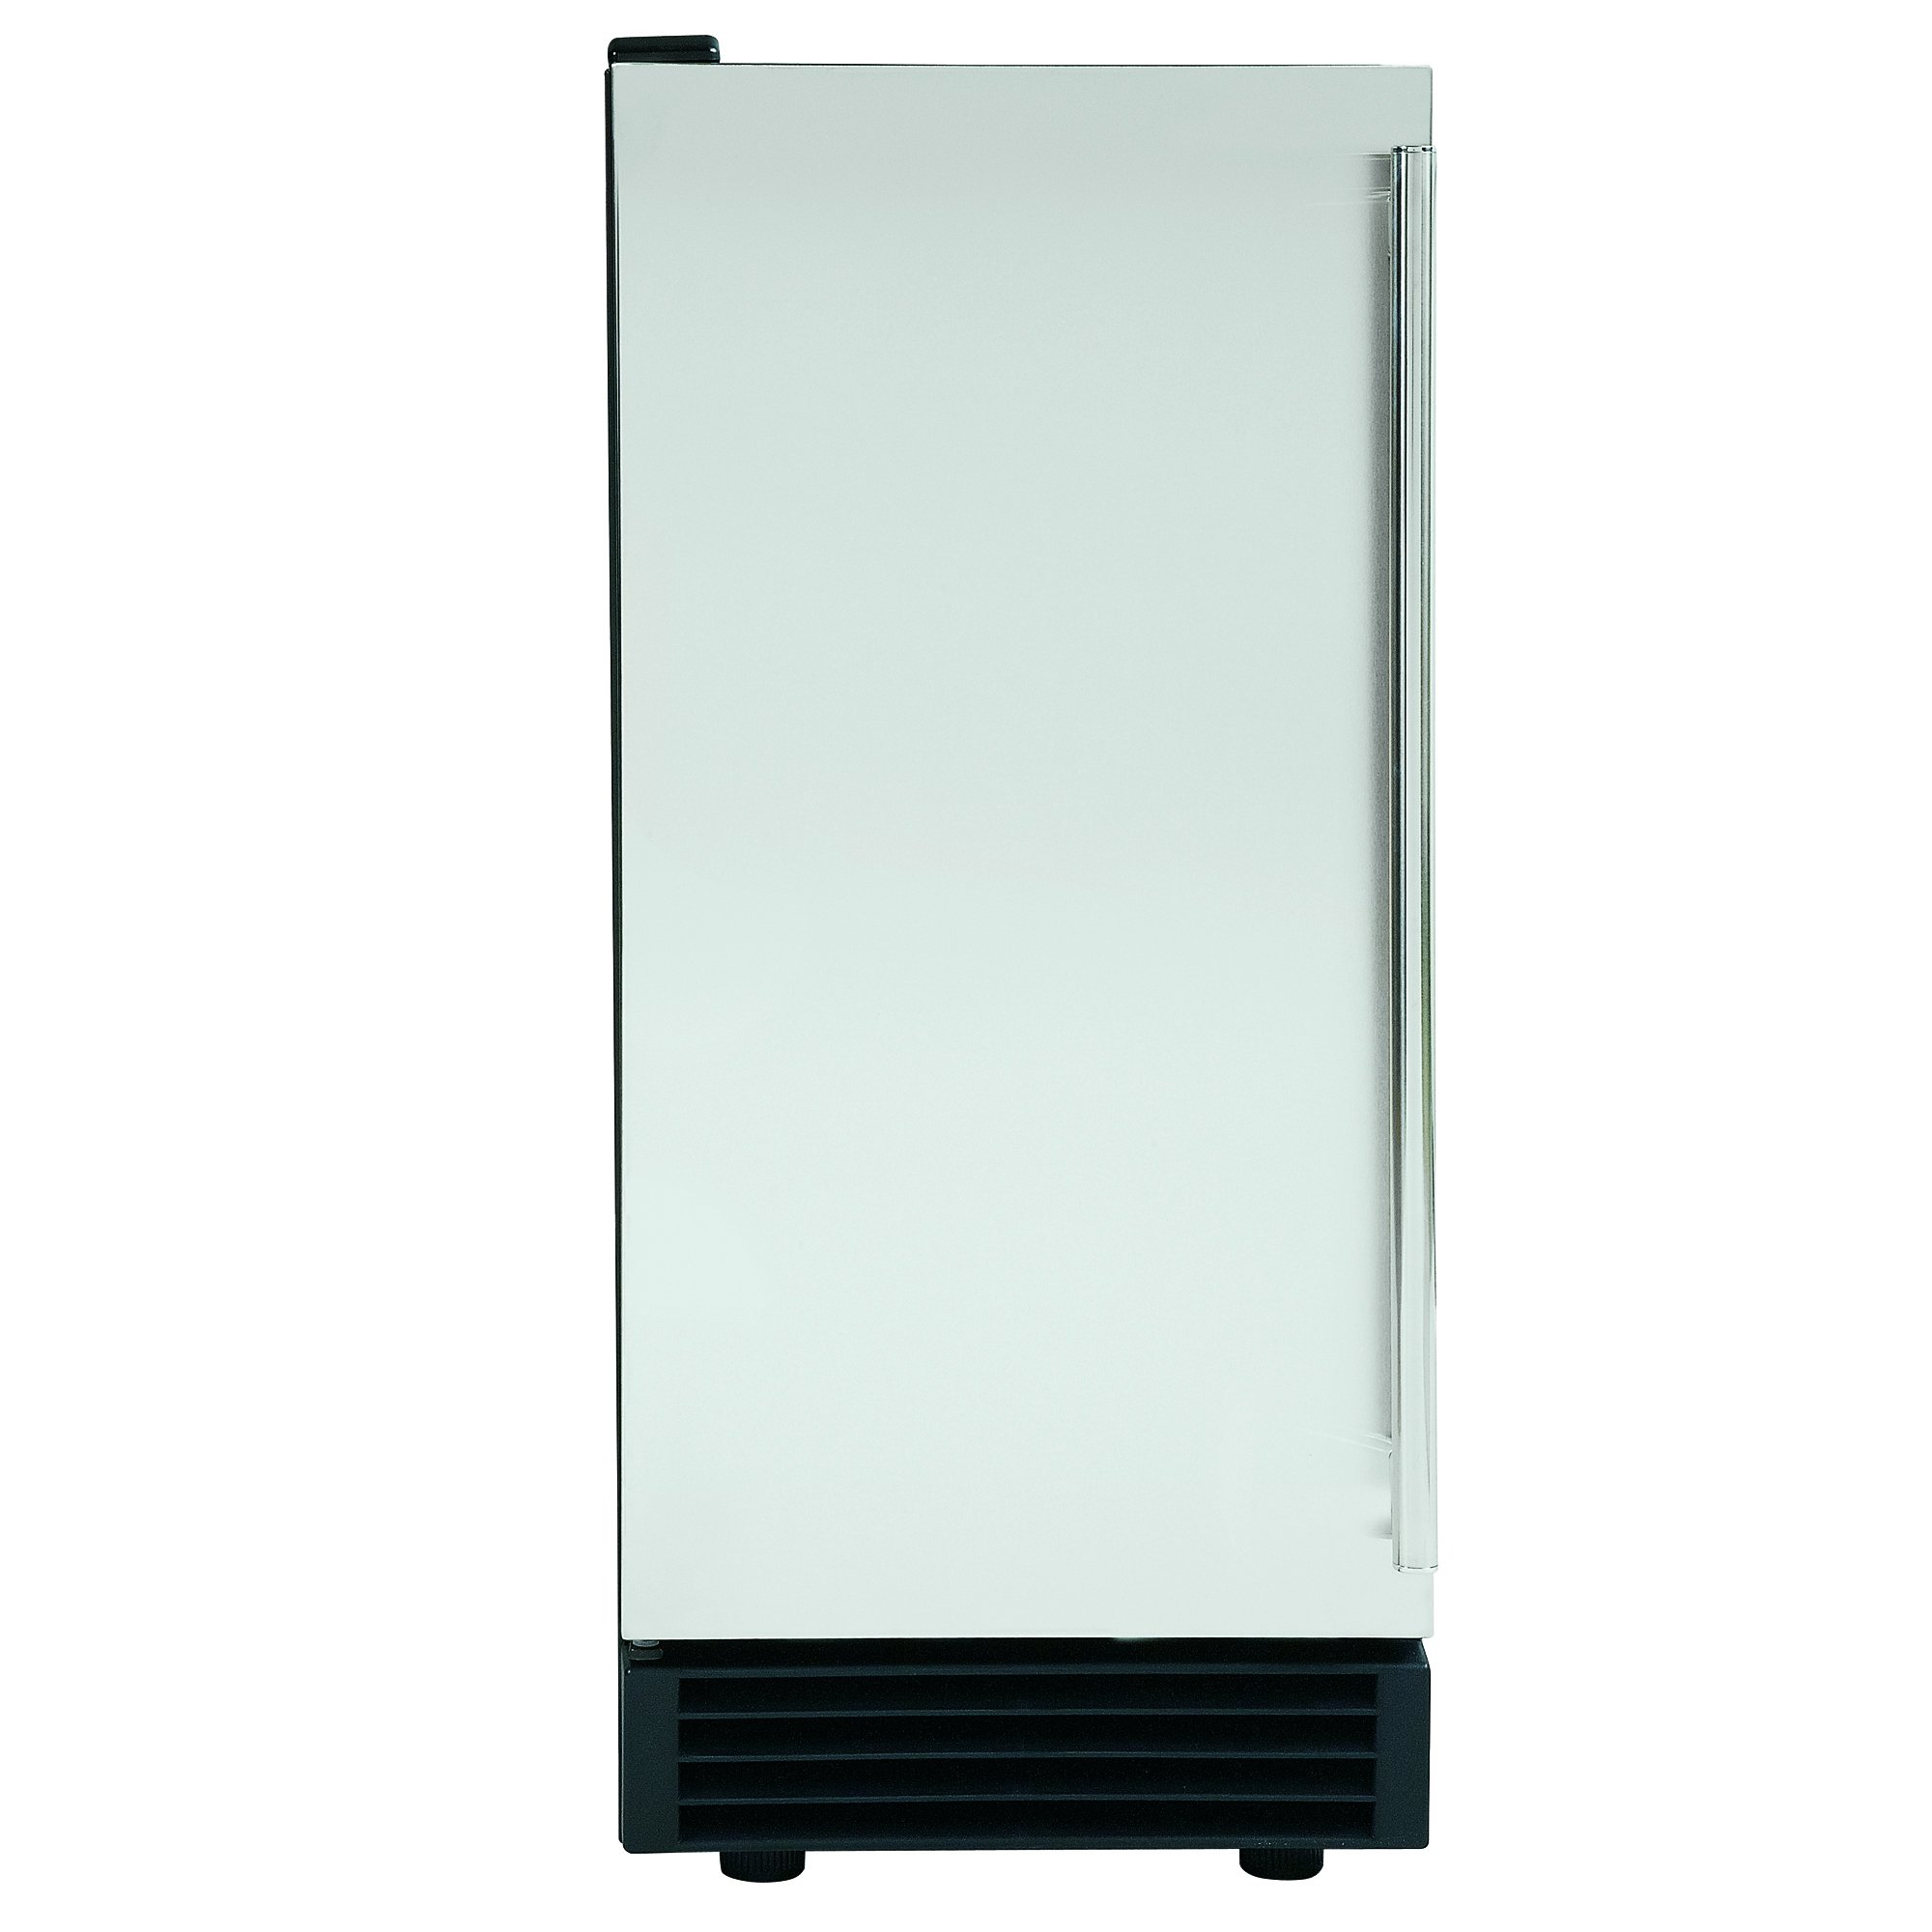 Maxx Ice MIM50X Built-In Undercounter Energy Star 50 Pound Stainless Steel Commercial Clear Ice Maker - REFURBISHED